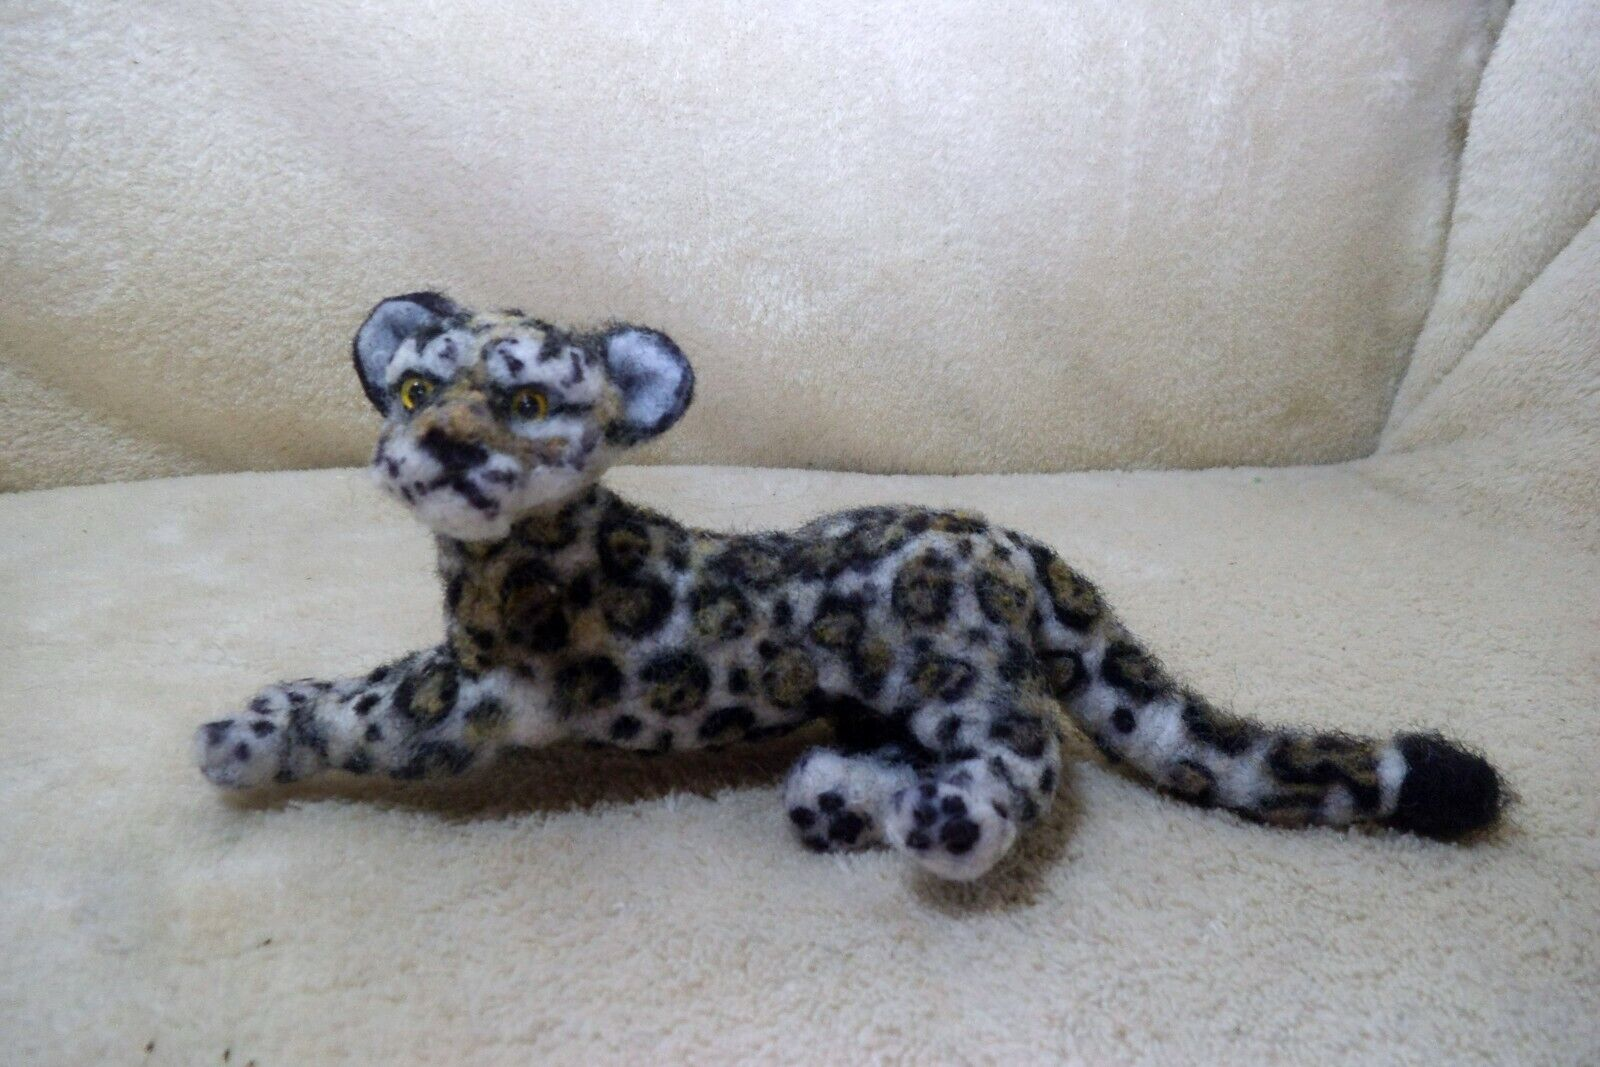 OOAK Needle Felted Artist Handcraft / Handmade Cat Snow Leopard Wildlife - $34.00